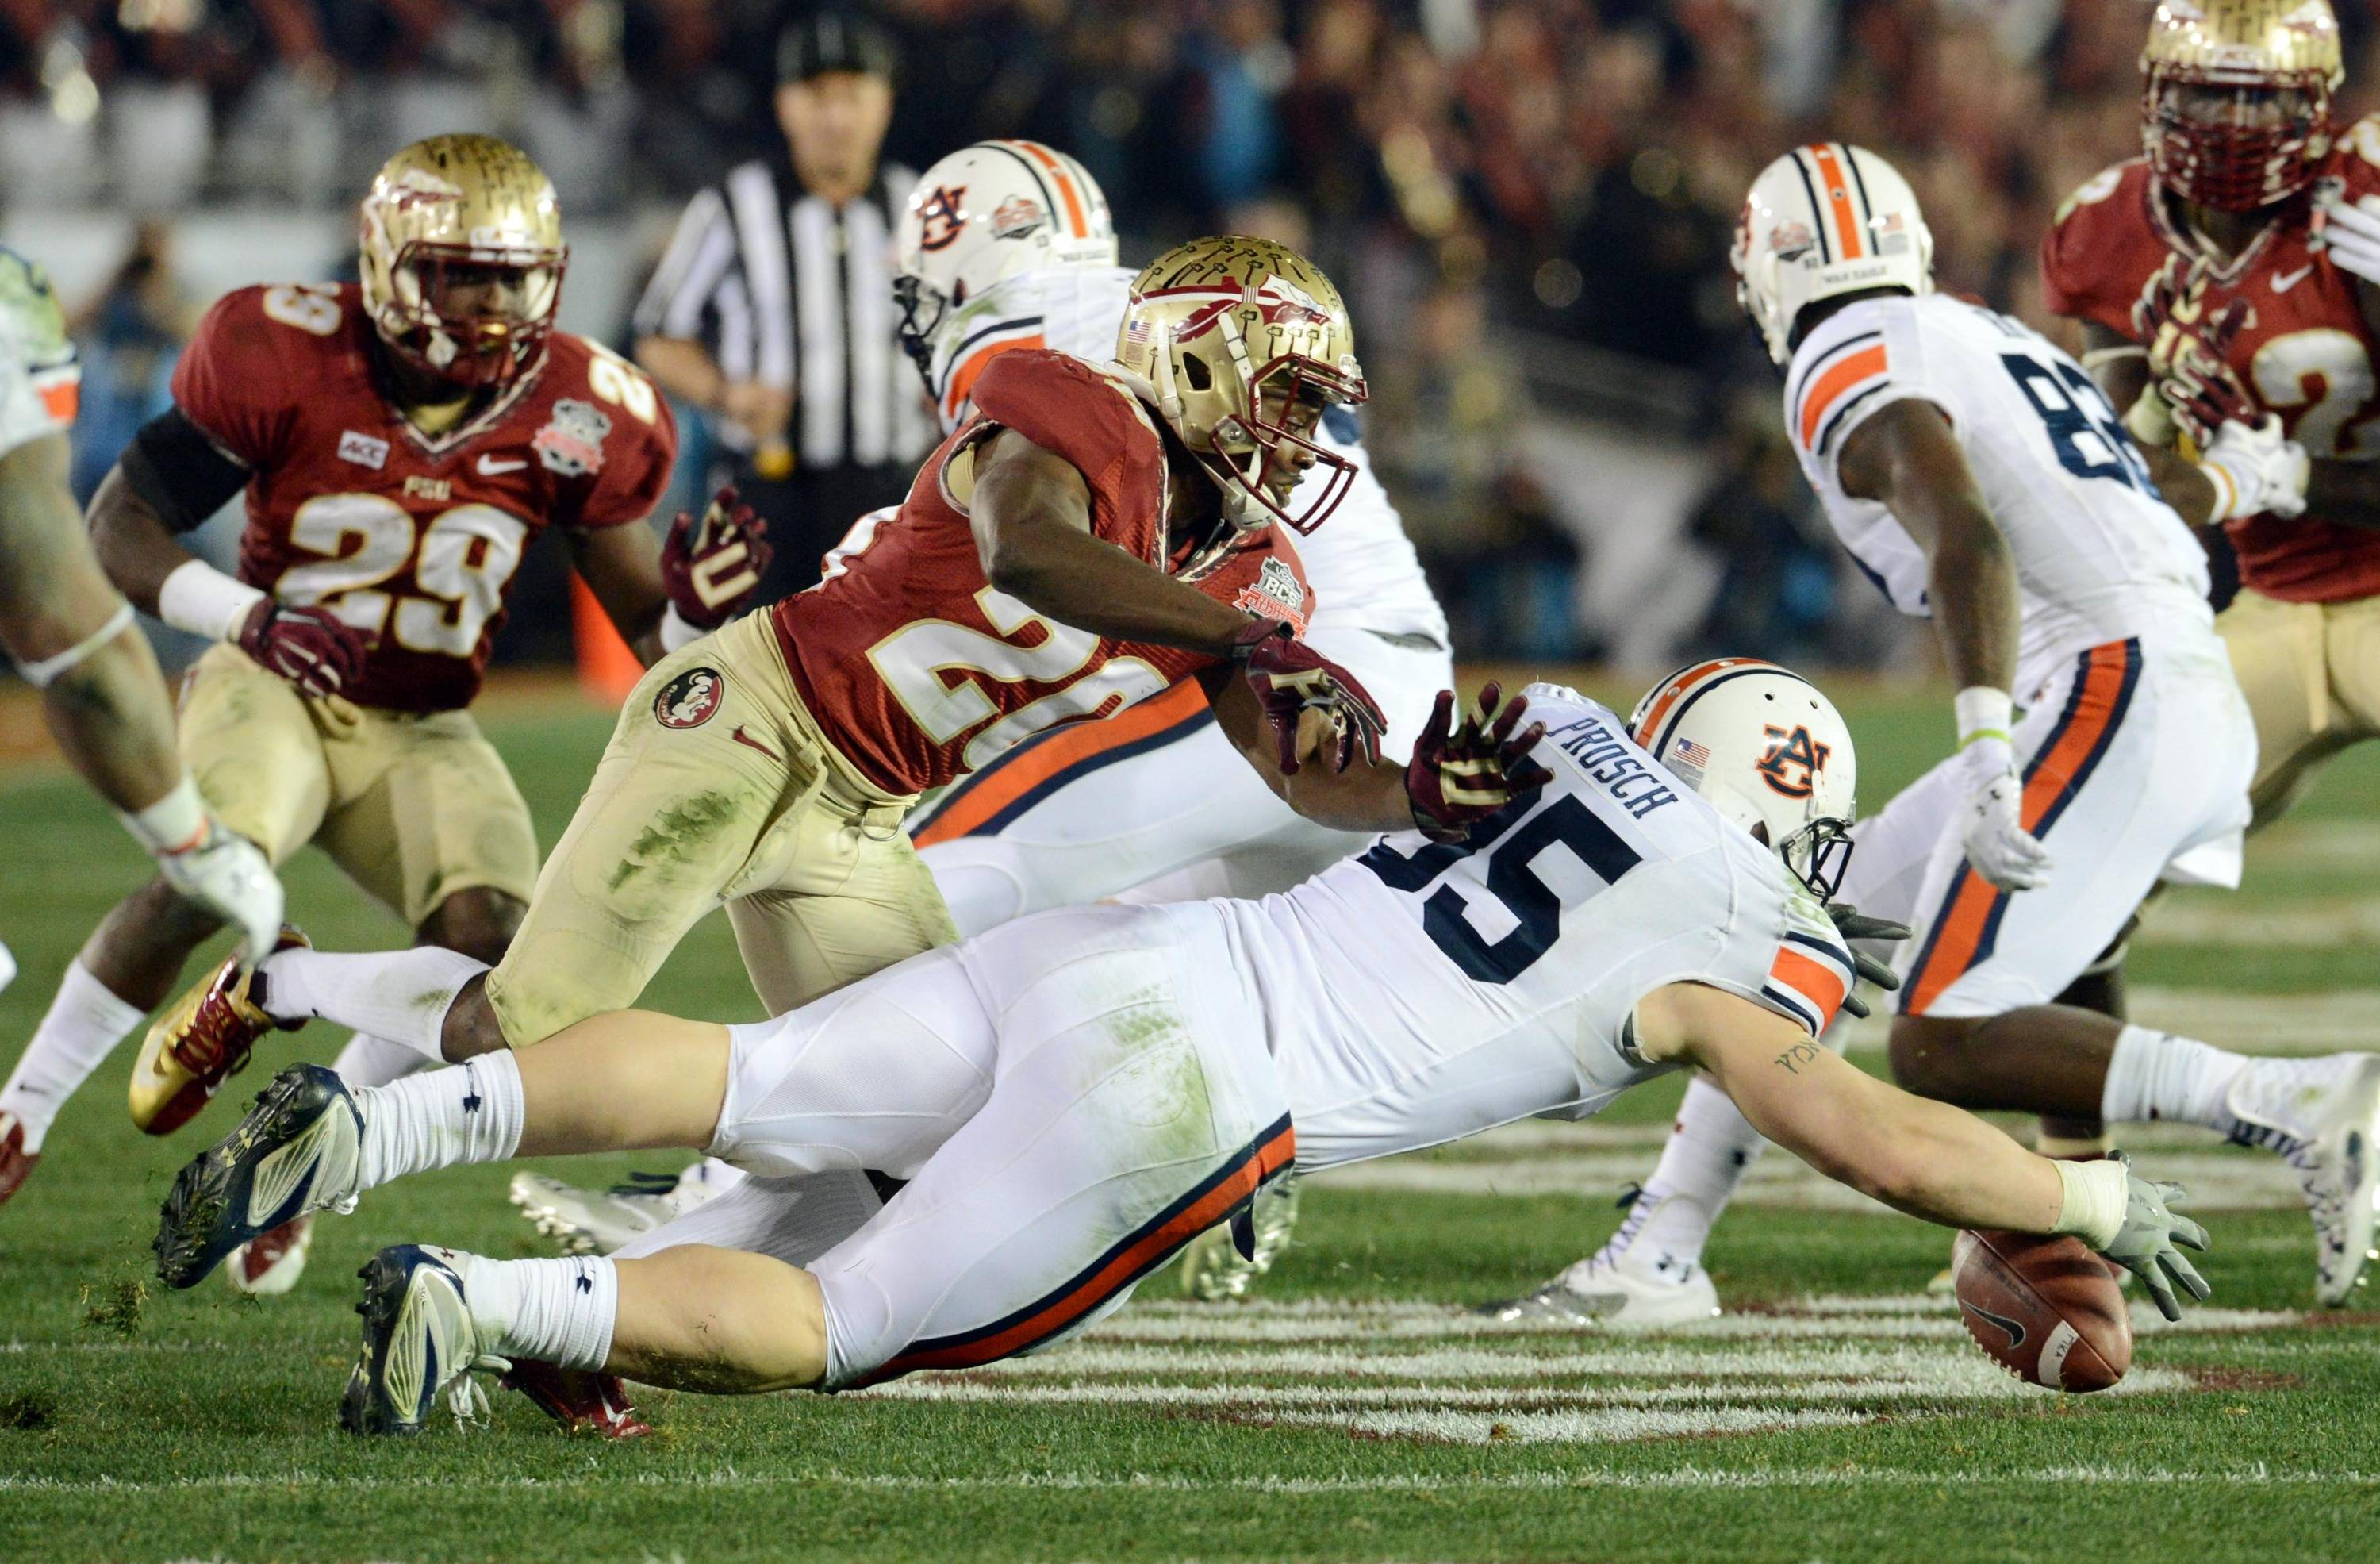 Jan 6, 2014; Pasadena, CA, USA; Auburn Tigers fullback Jay Prosch (35) dives for the ball while defended by Florida State Seminoles defensive back Lamarcus Joyner (20) during the second half of the 2014 BCS National Championship game at the Rose Bowl.  Mandatory Credit: Jayne Kamin-Oncea-USA TODAY Sports